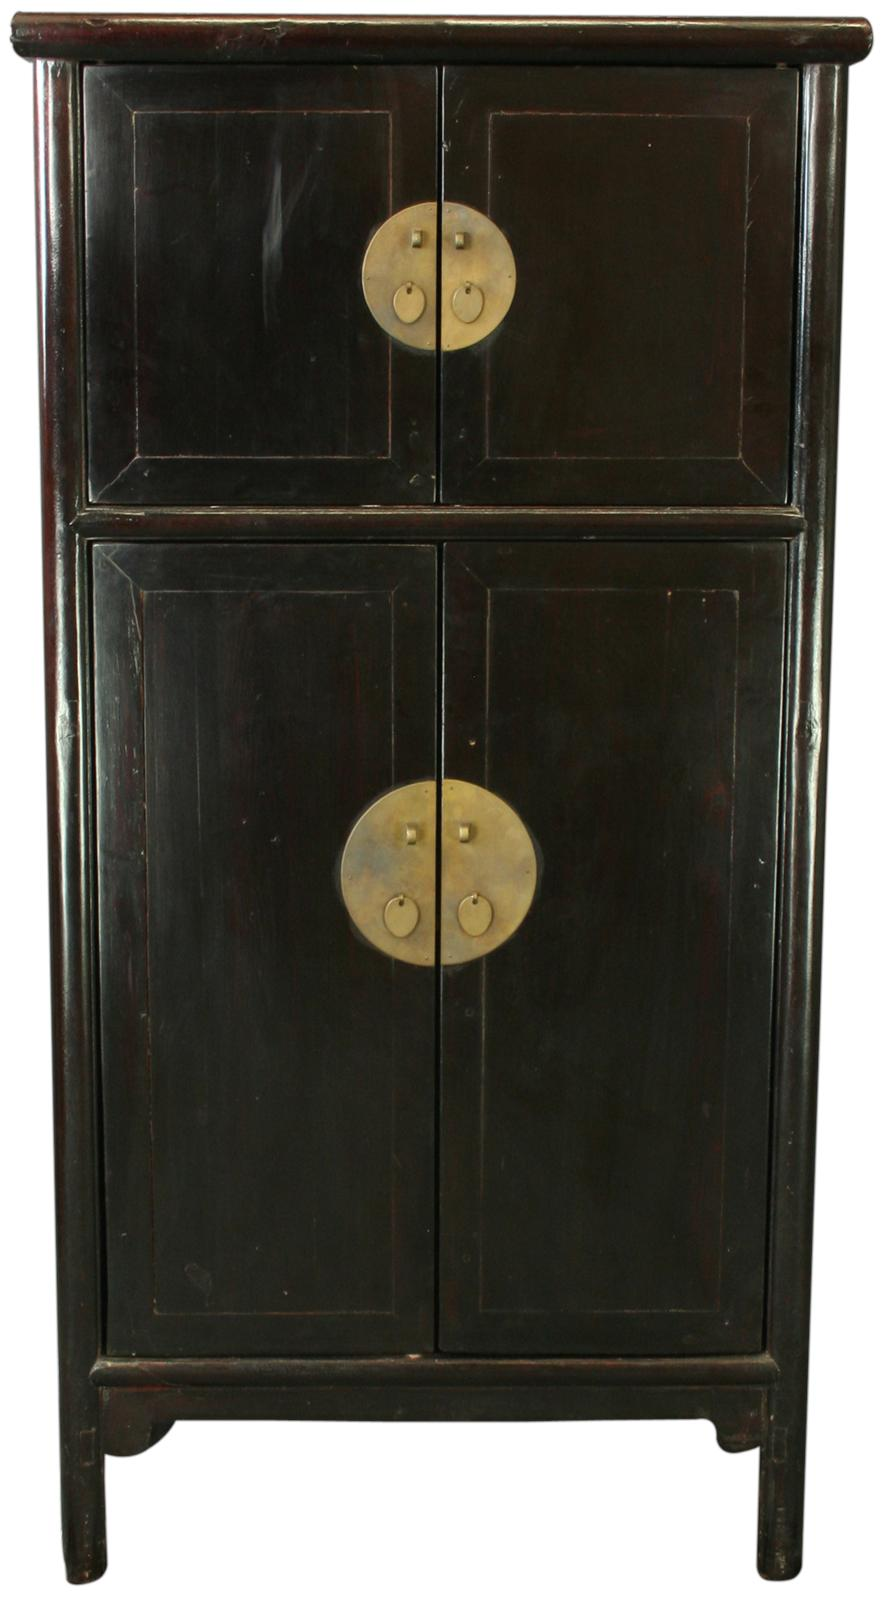 antique chinese black armoire storage cabinet wardrobe ebay. Black Bedroom Furniture Sets. Home Design Ideas